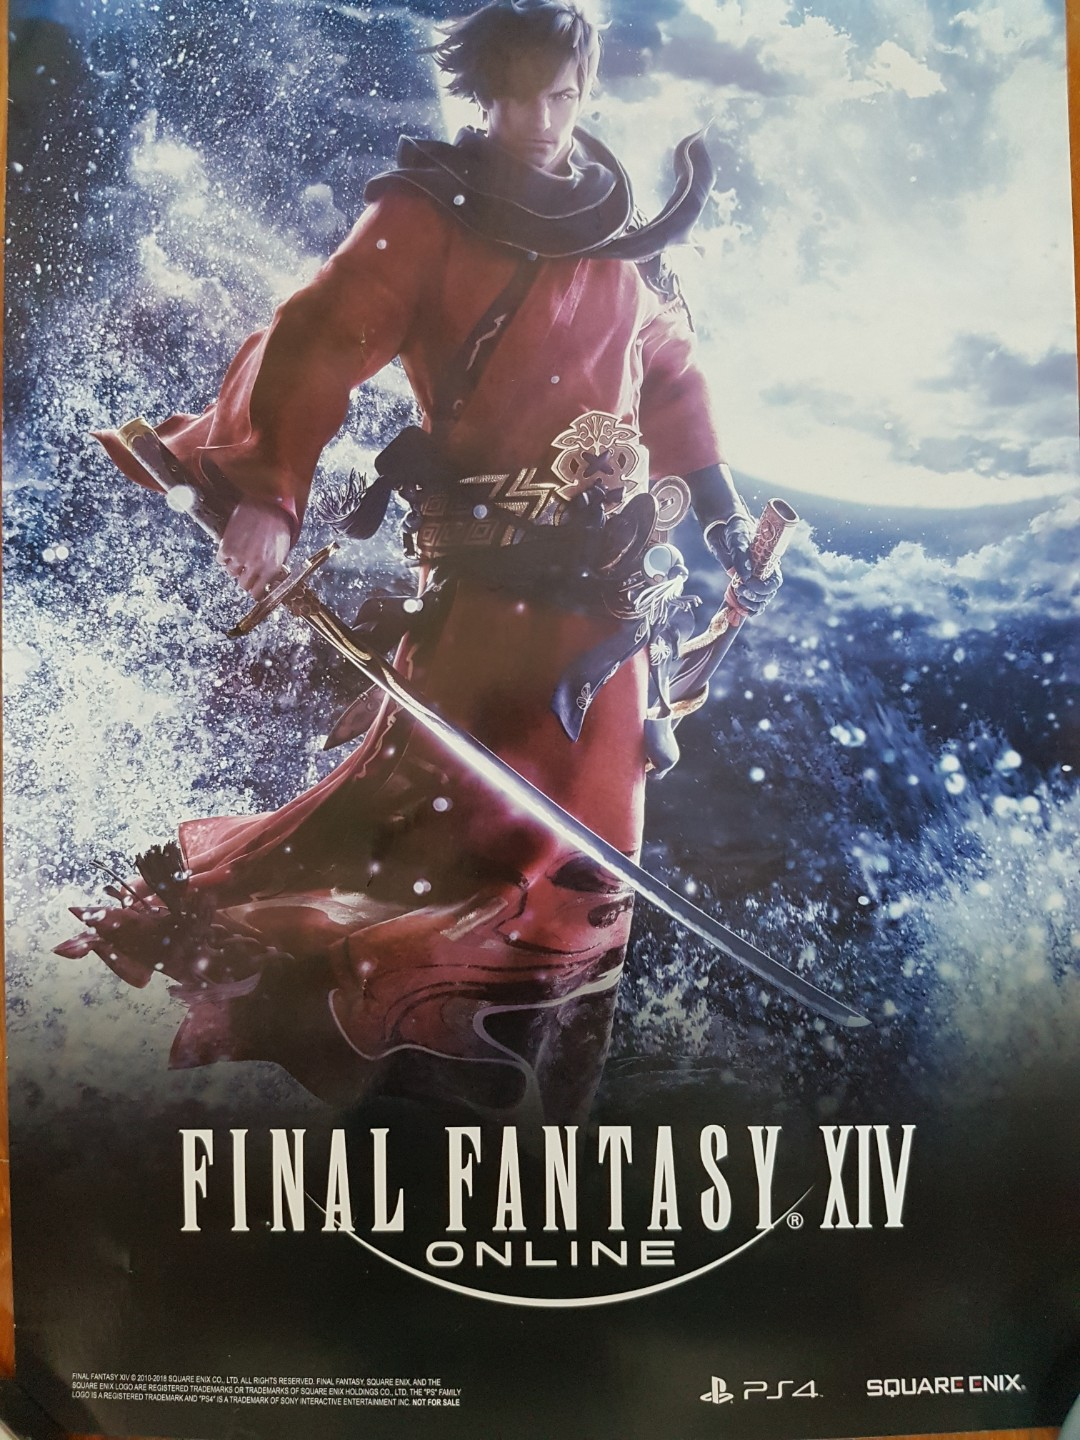 Final Fantasy XIV posters QYOP, Toys & Games, Others on